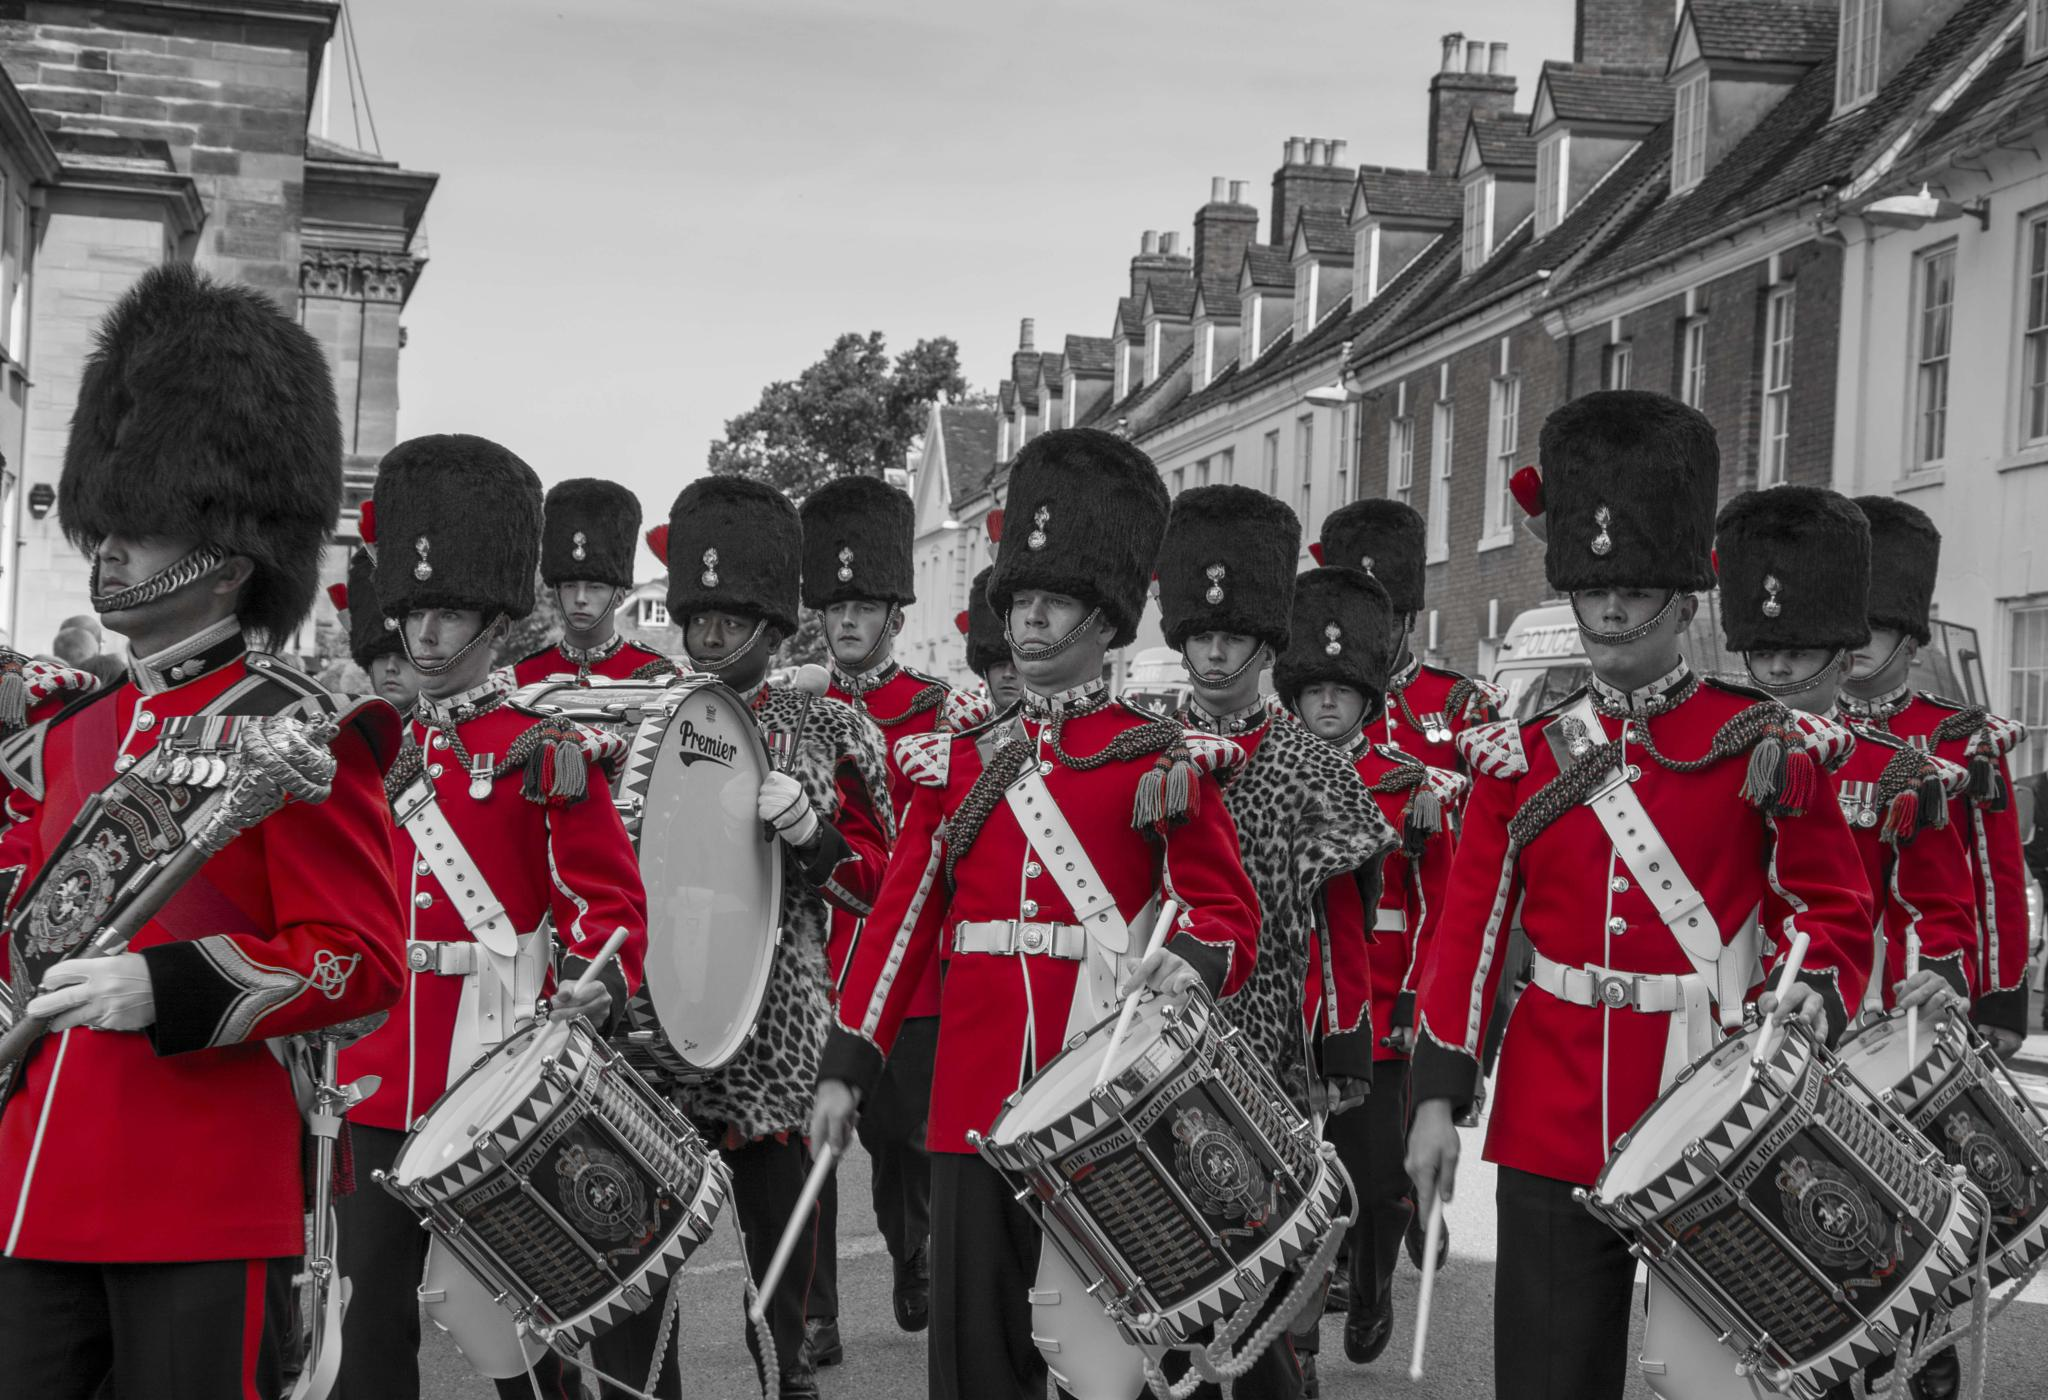 Guards on Parade by paul.spencer.39395